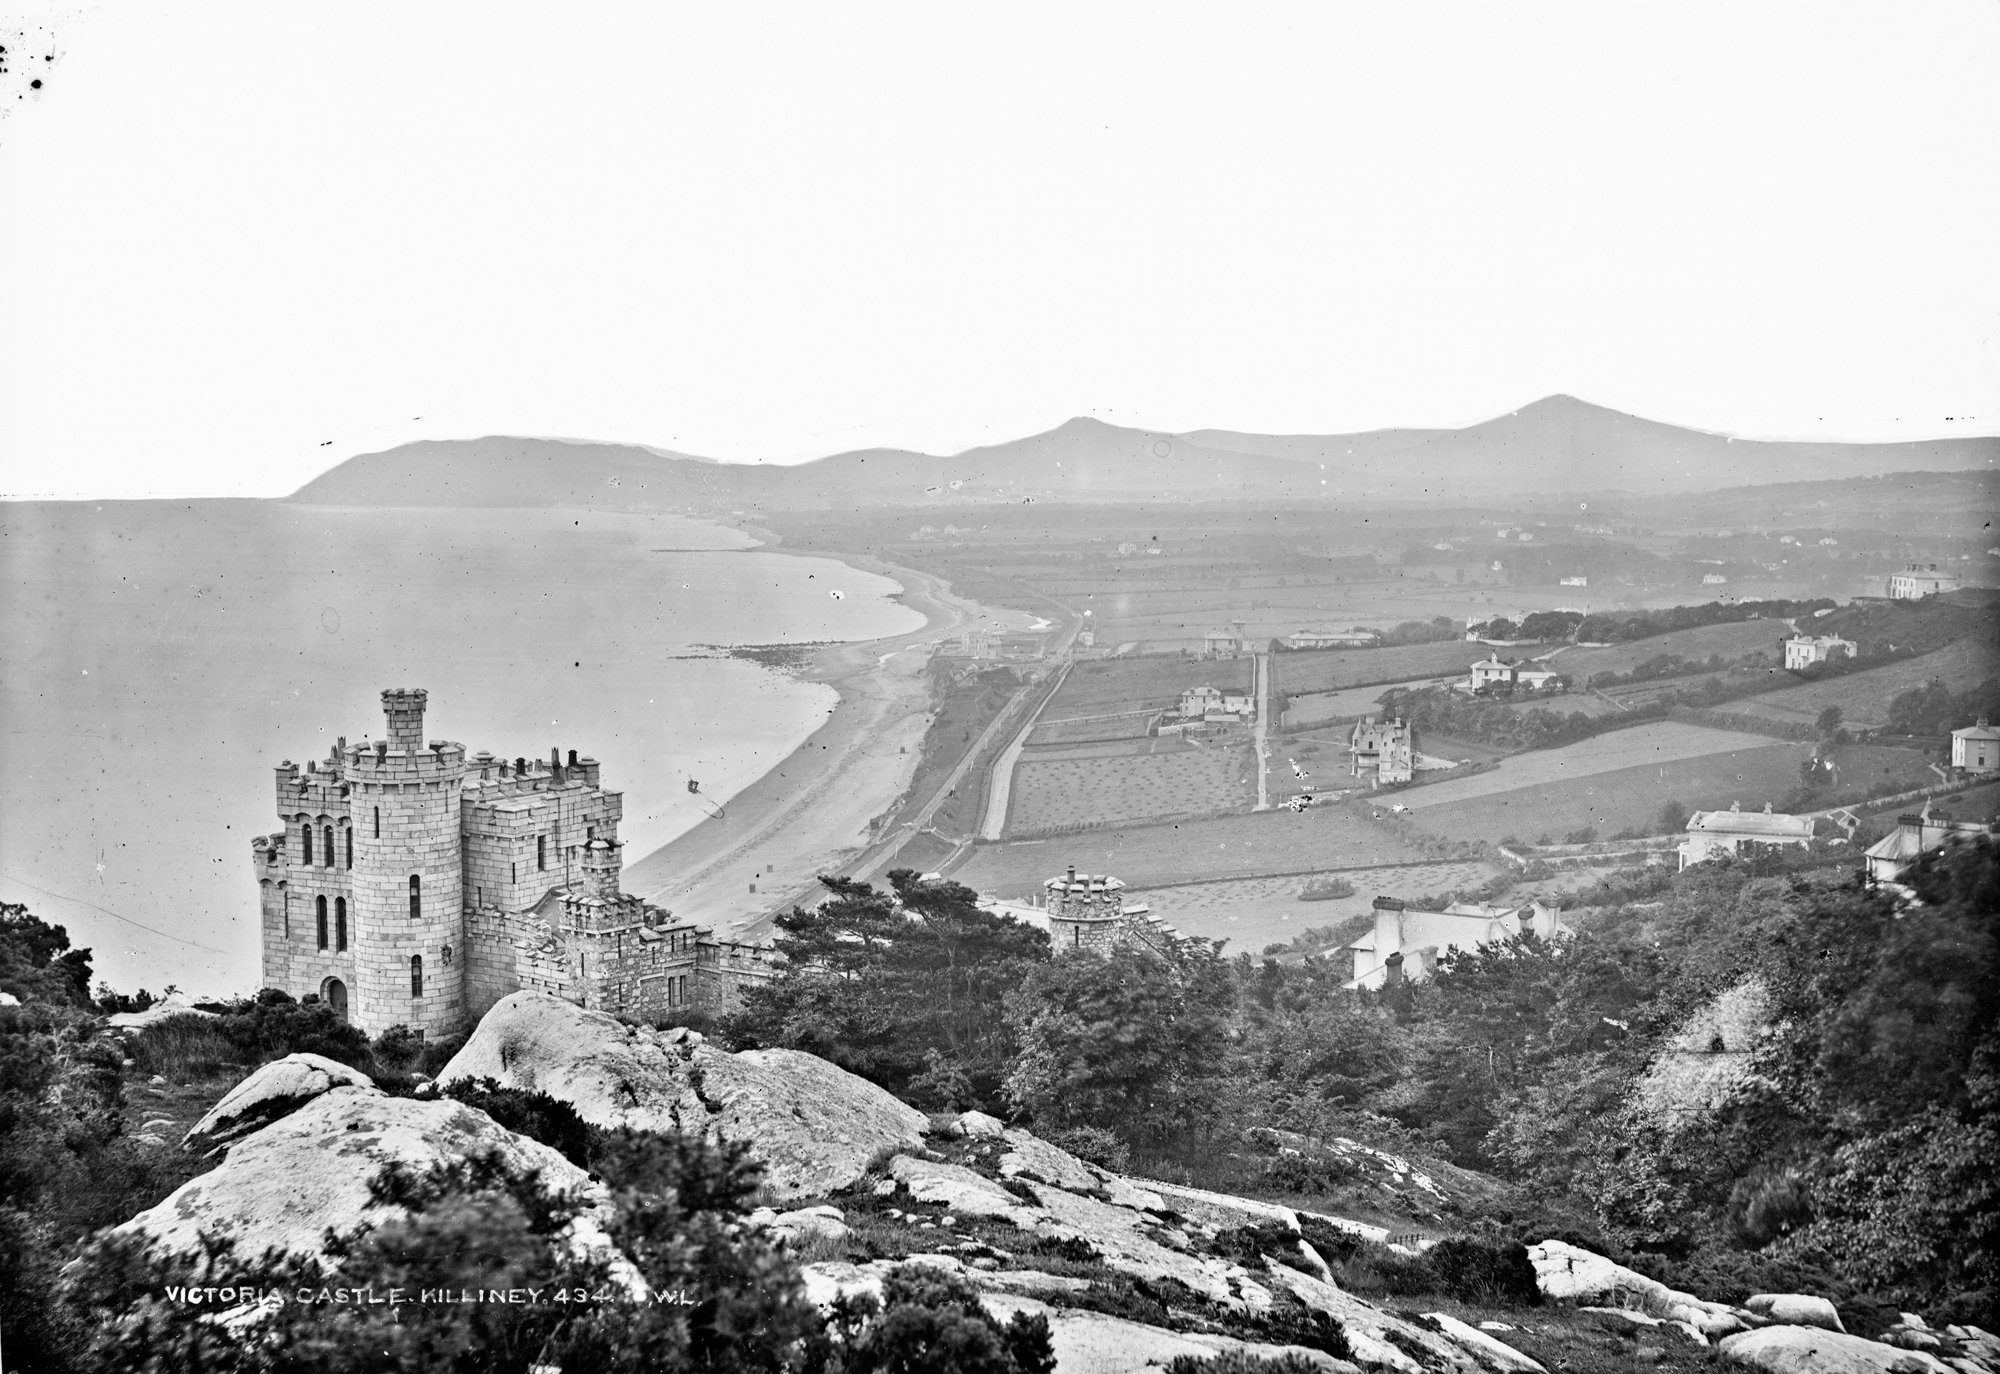 Victoria Castle East Gate, Killiney, Co. Dublin